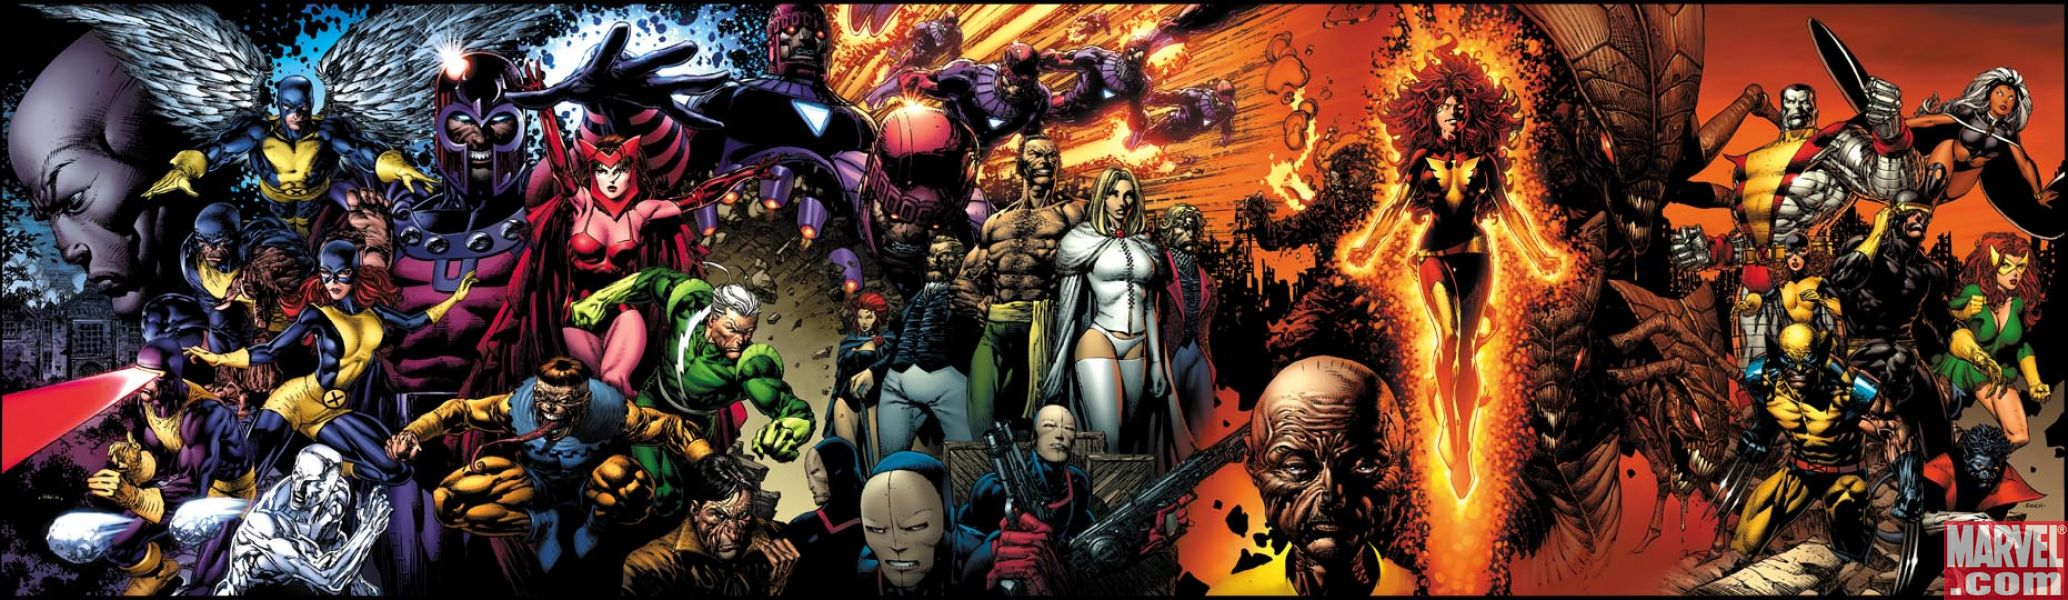 X Men Characters Comic X-Men Fan Cast